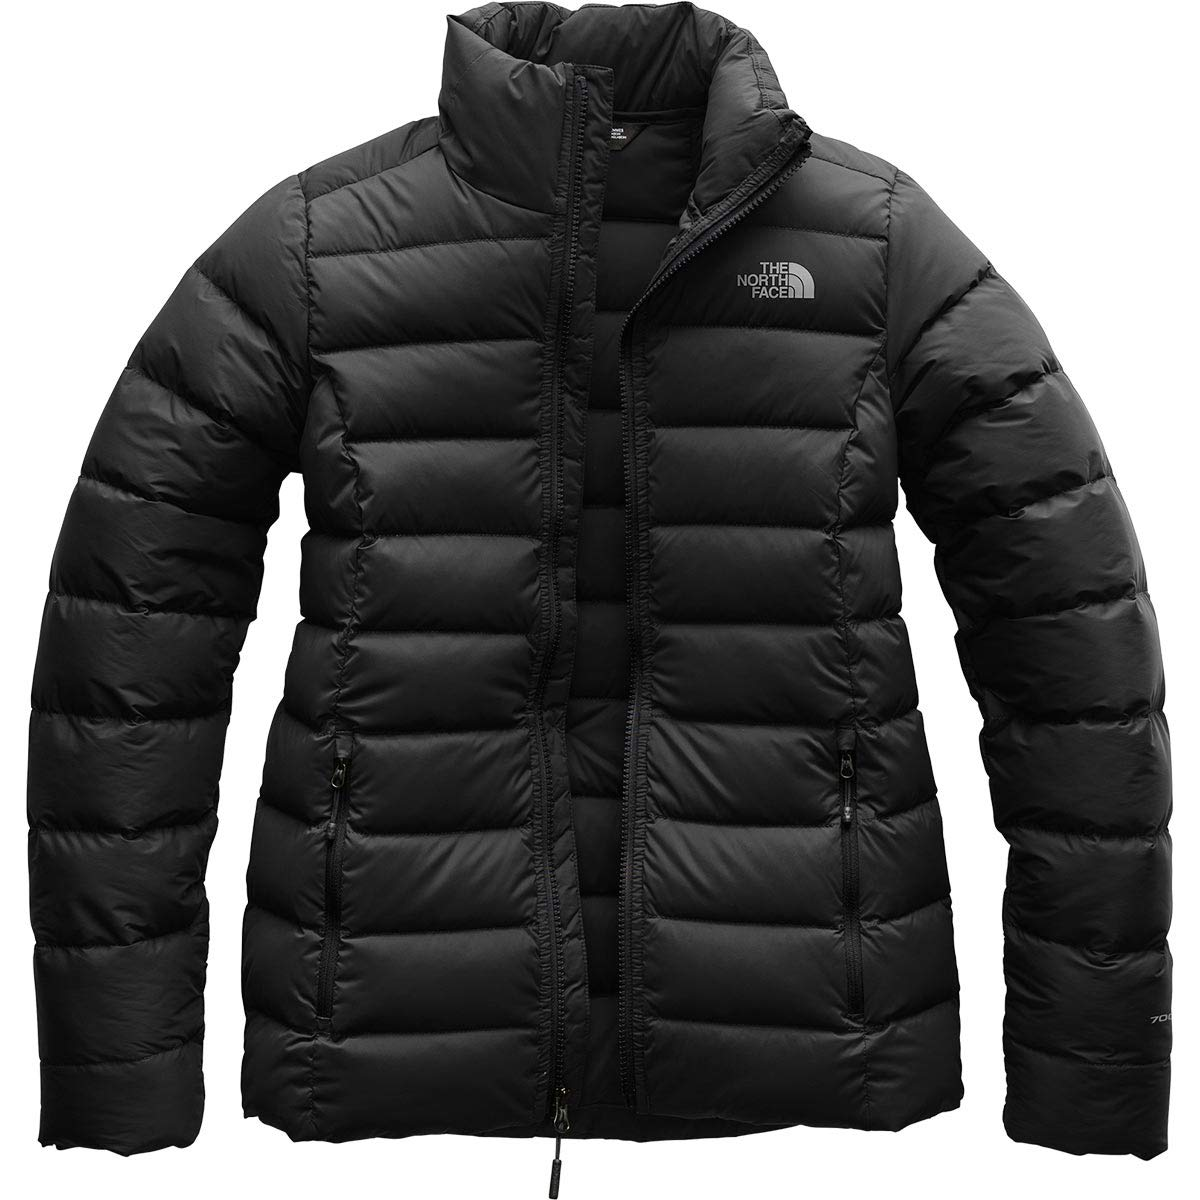 713c23014 Amazon.com: The North Face Stretch Down Jacket Women TNF Black ...